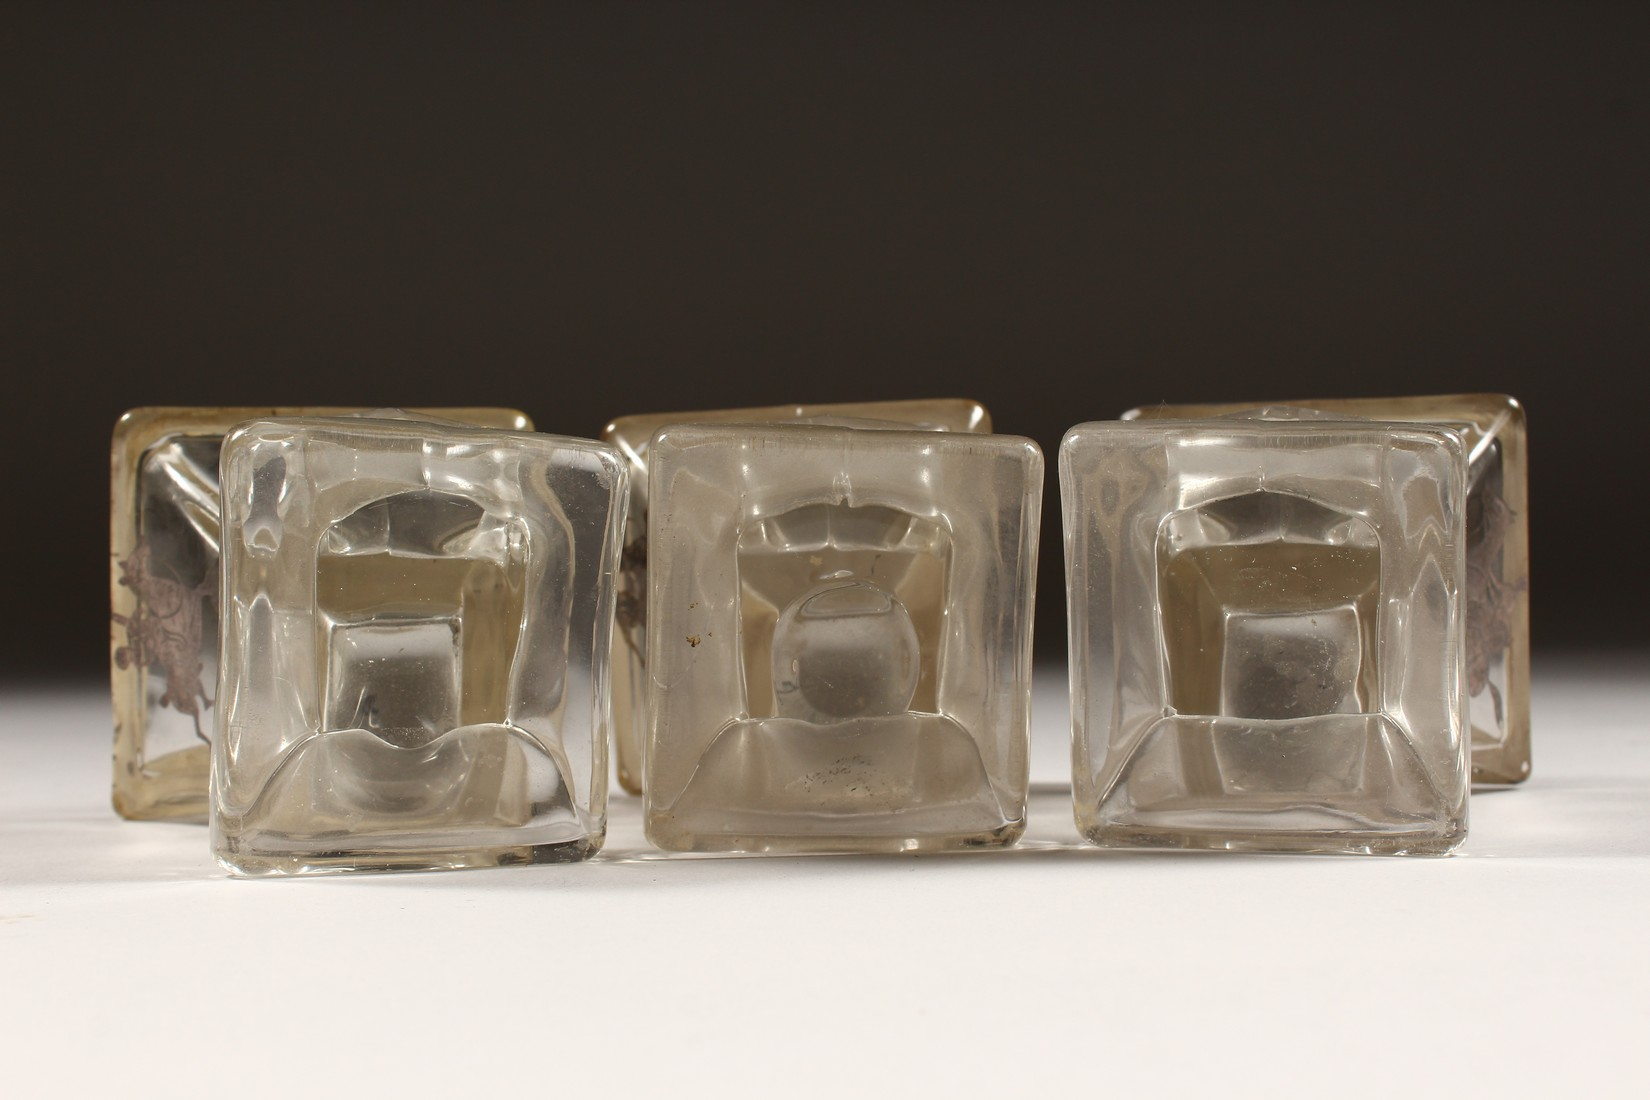 A SET OF THREE SILVER OVERLAY MOULDED GLASS SMALL VASES, decorated with polo players on horseback. - Image 5 of 5